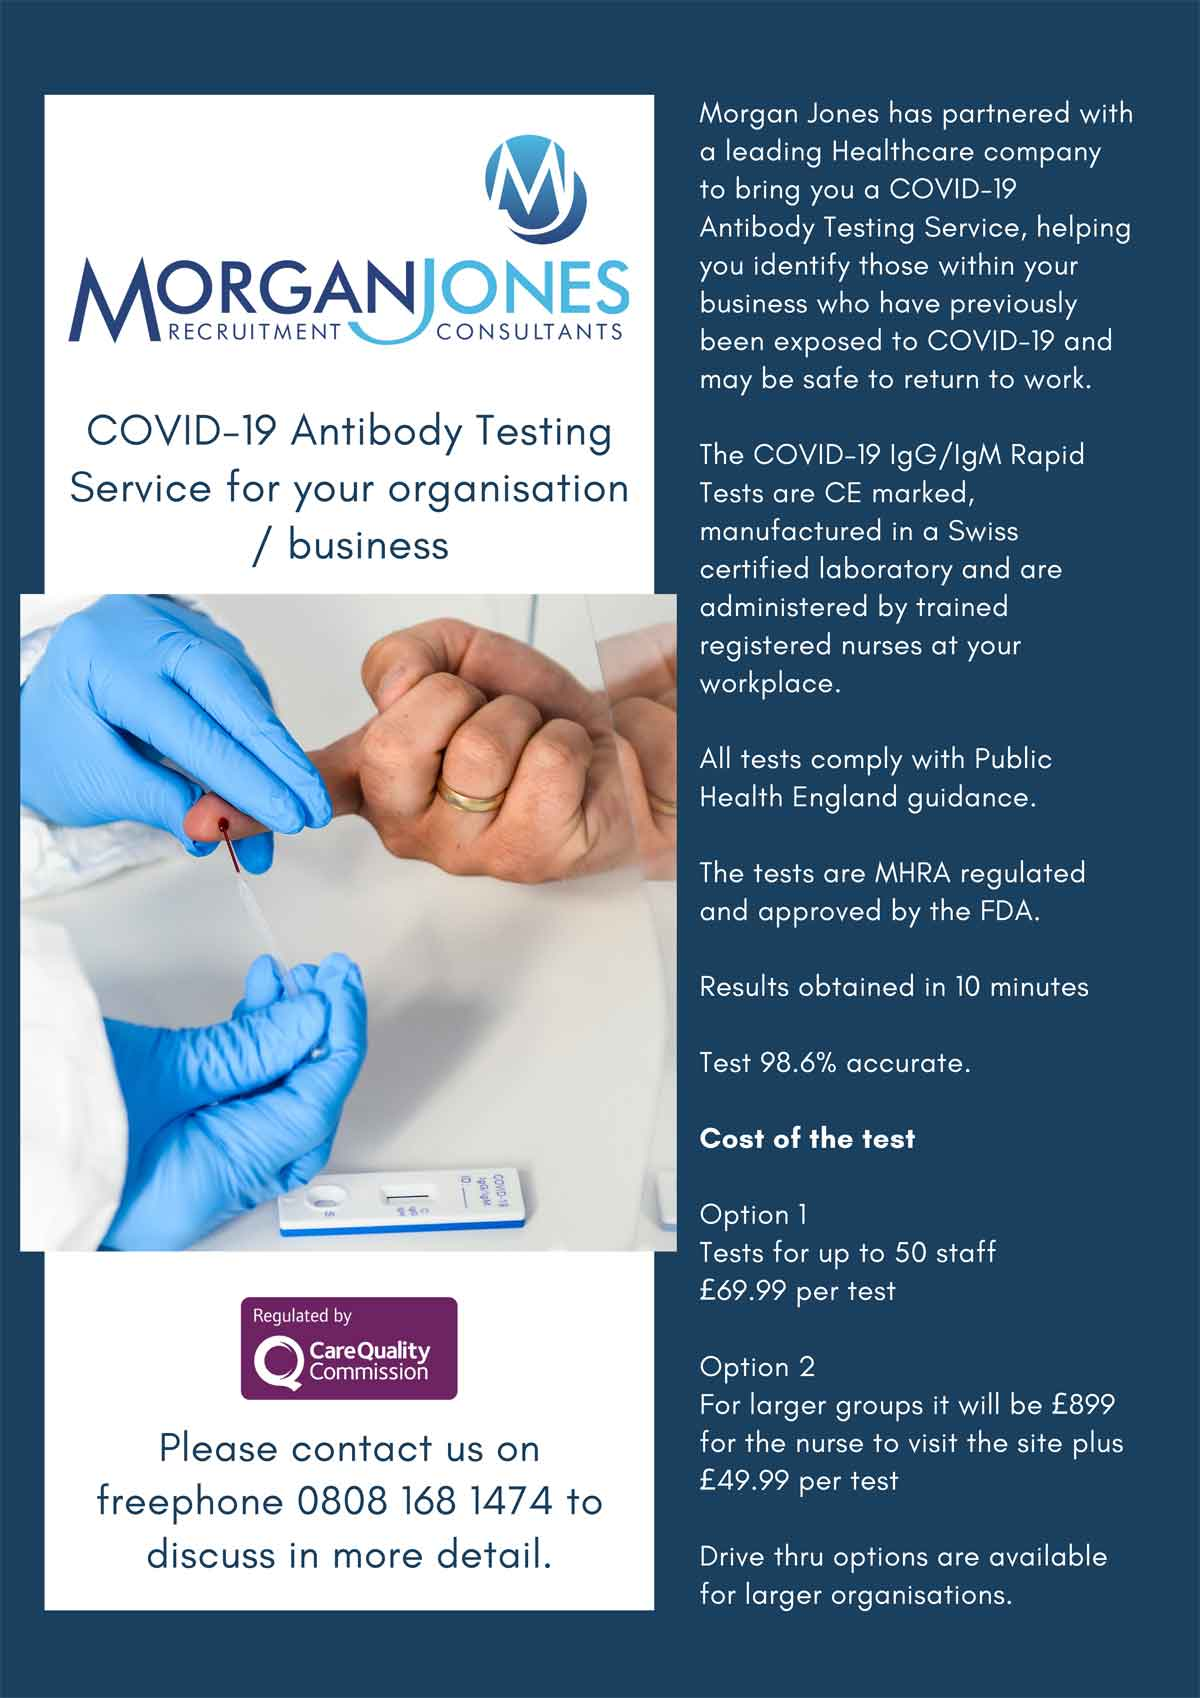 Morgan Jones is now COVID-19 Antibody Testing